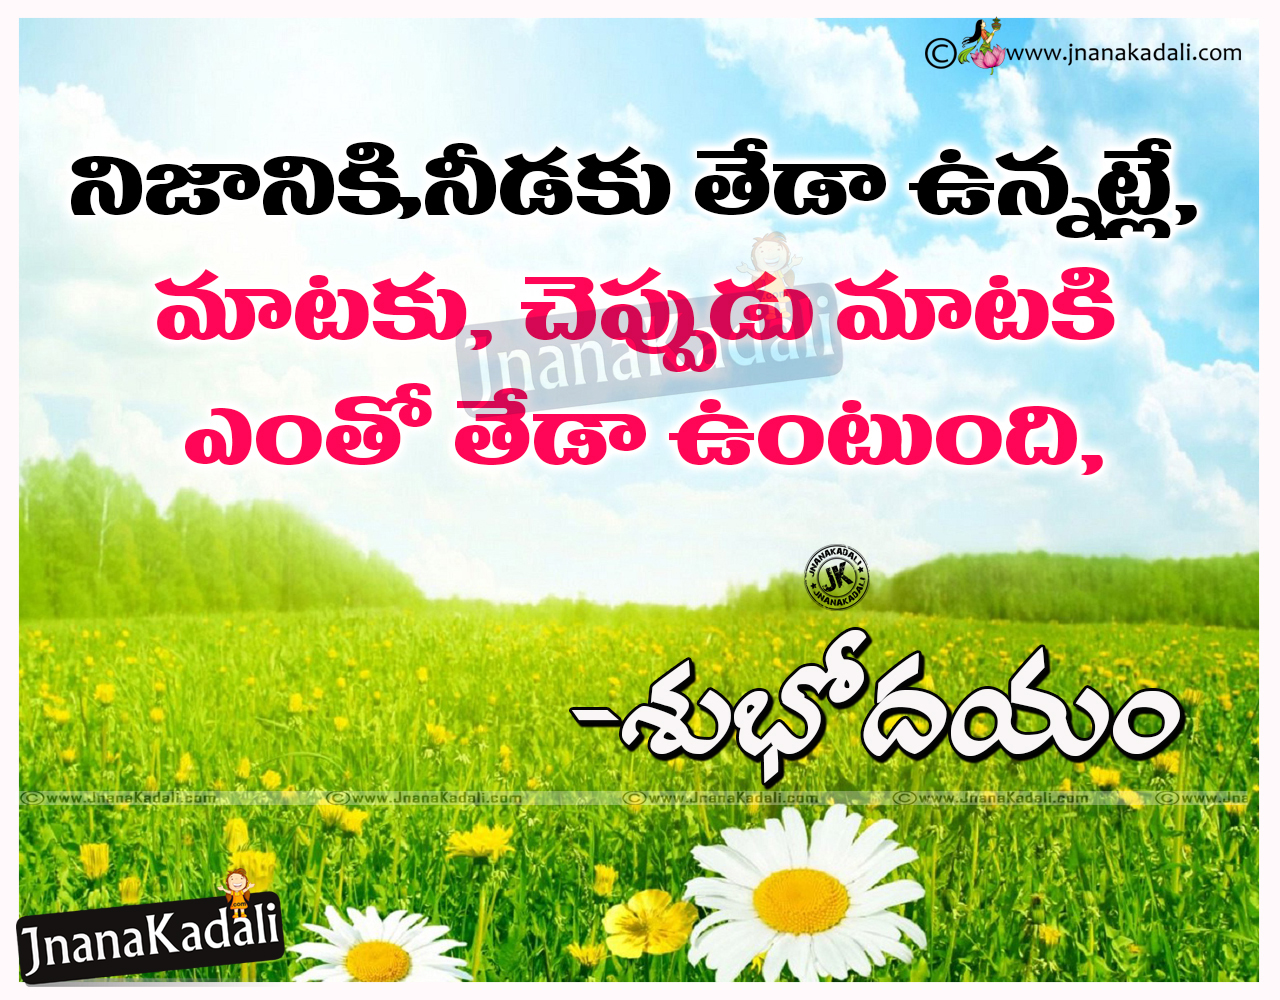 Latest good morning images in telugu impremedia here is a new telugu good morning messages and greetings with cute baby images telugu kristyandbryce Images